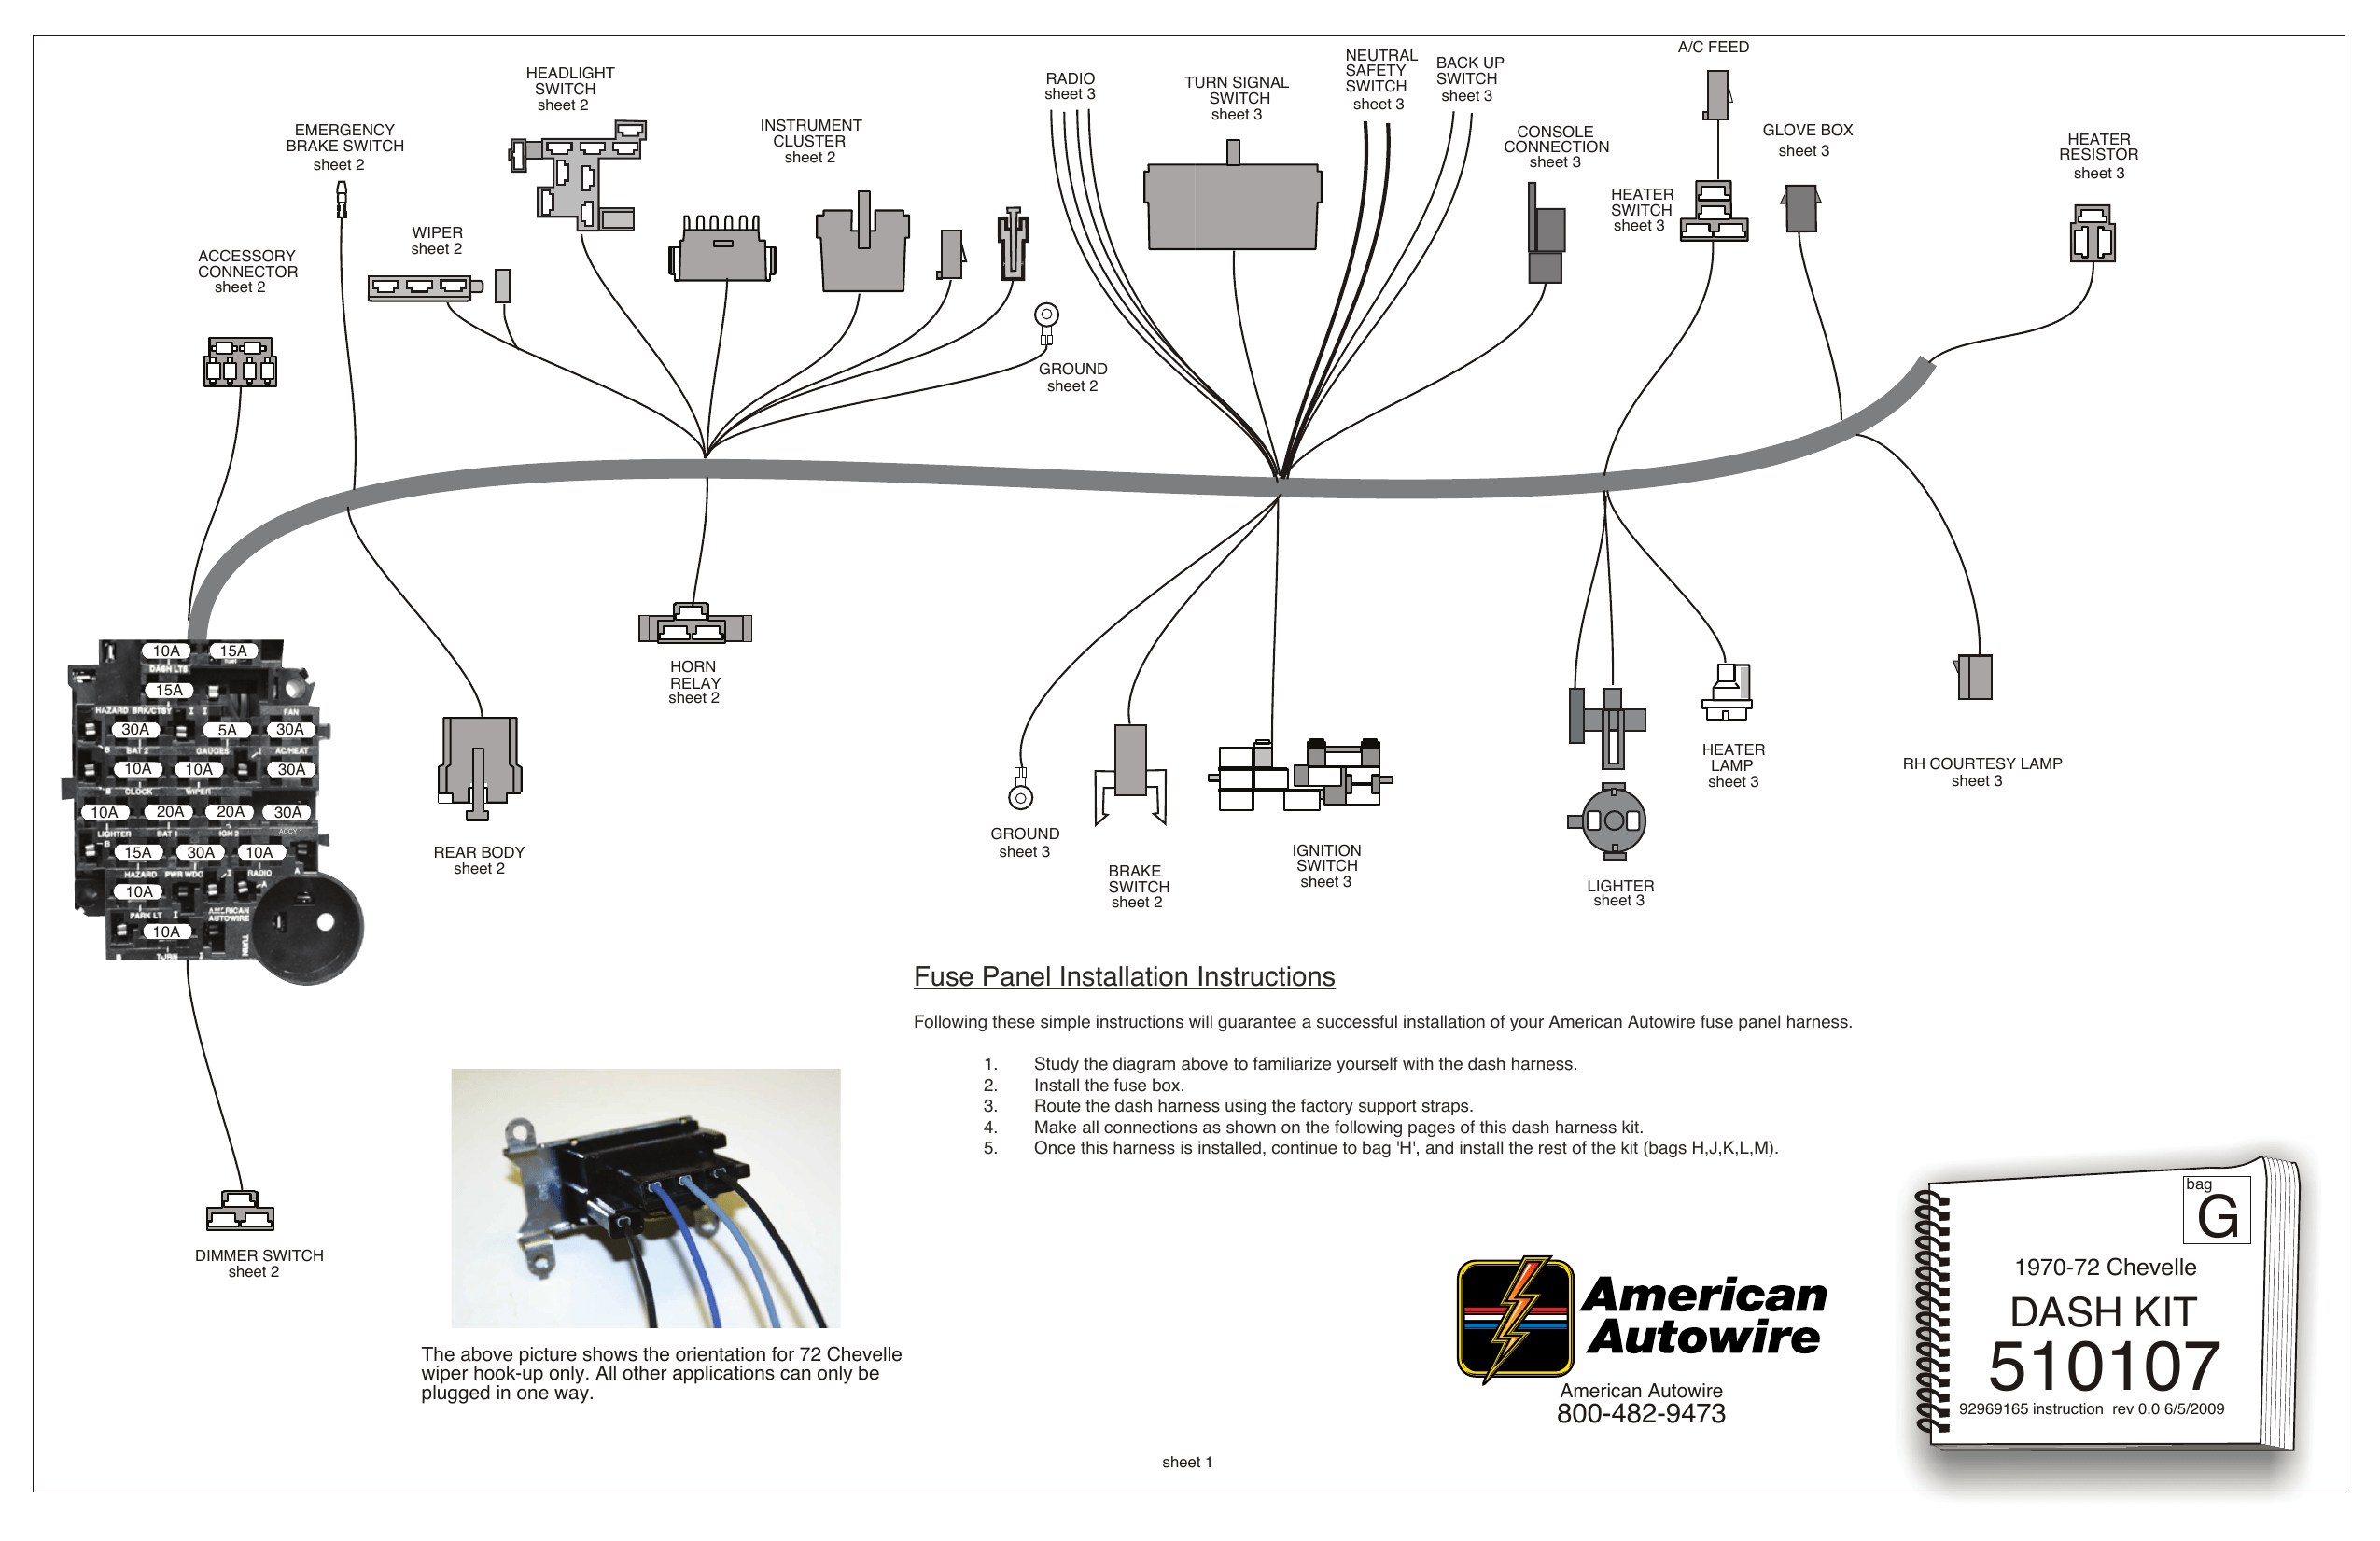 4a863 American Autowire Diagrams